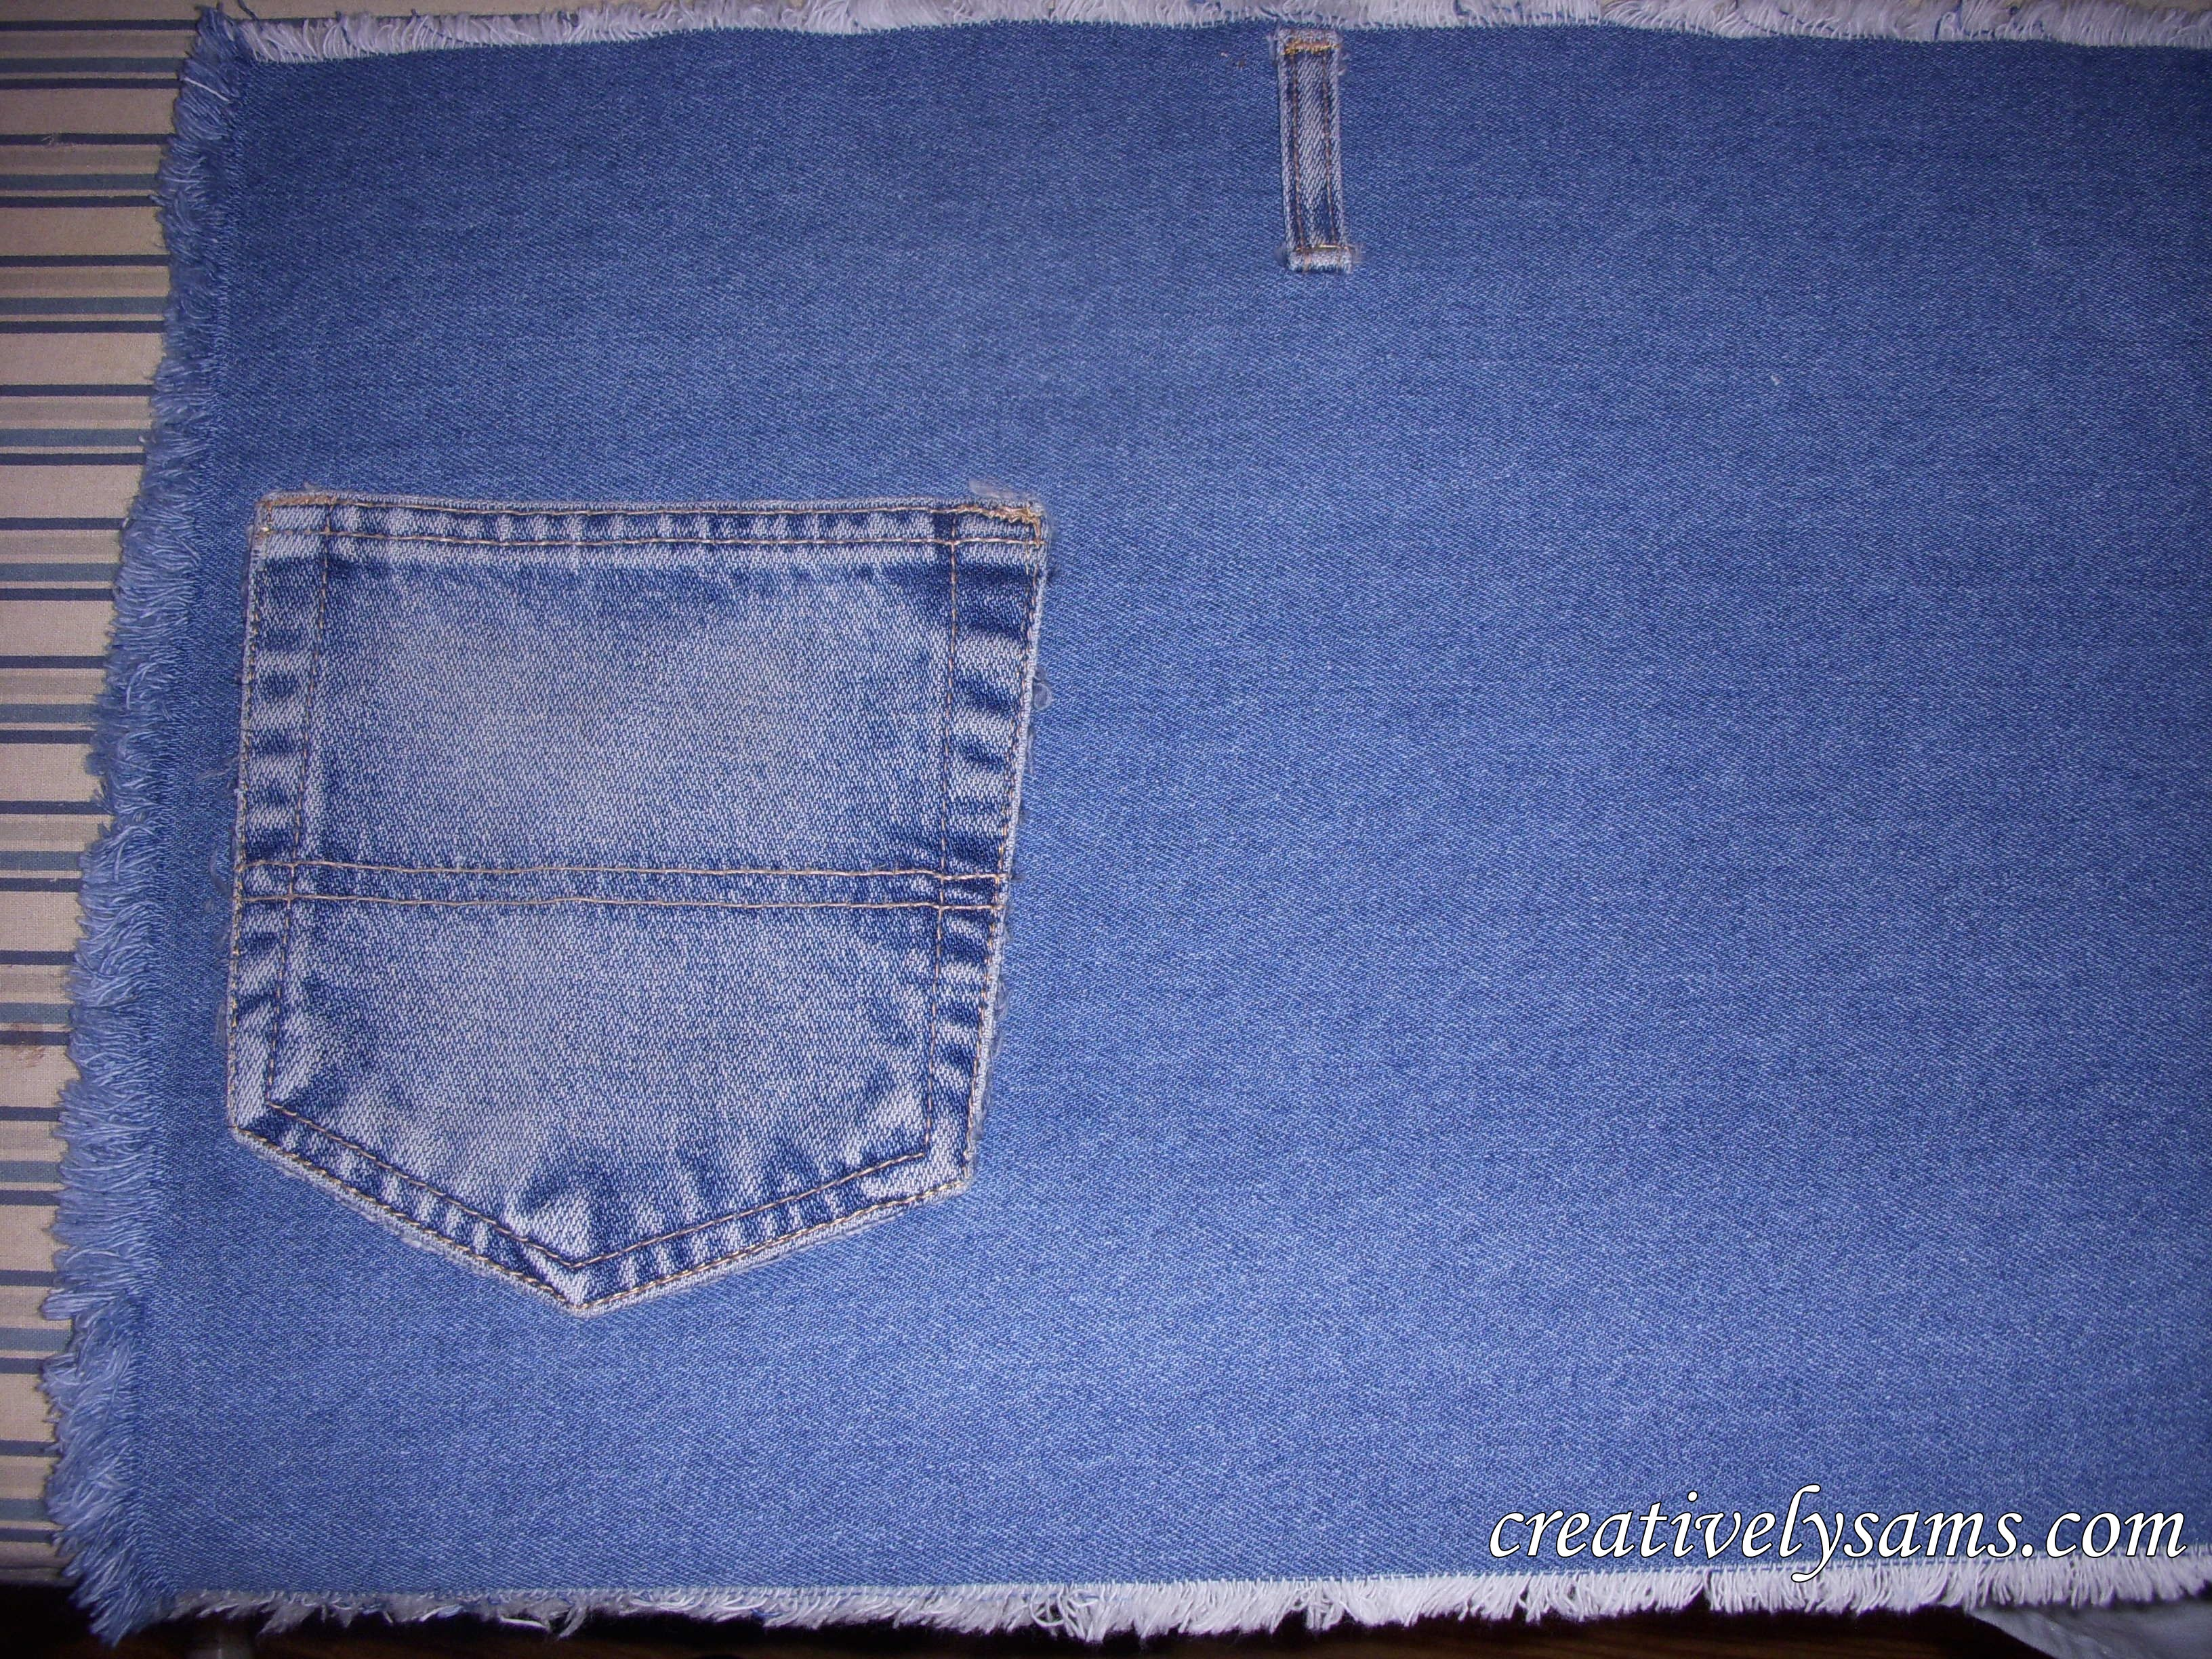 Denim Place Mats Finished